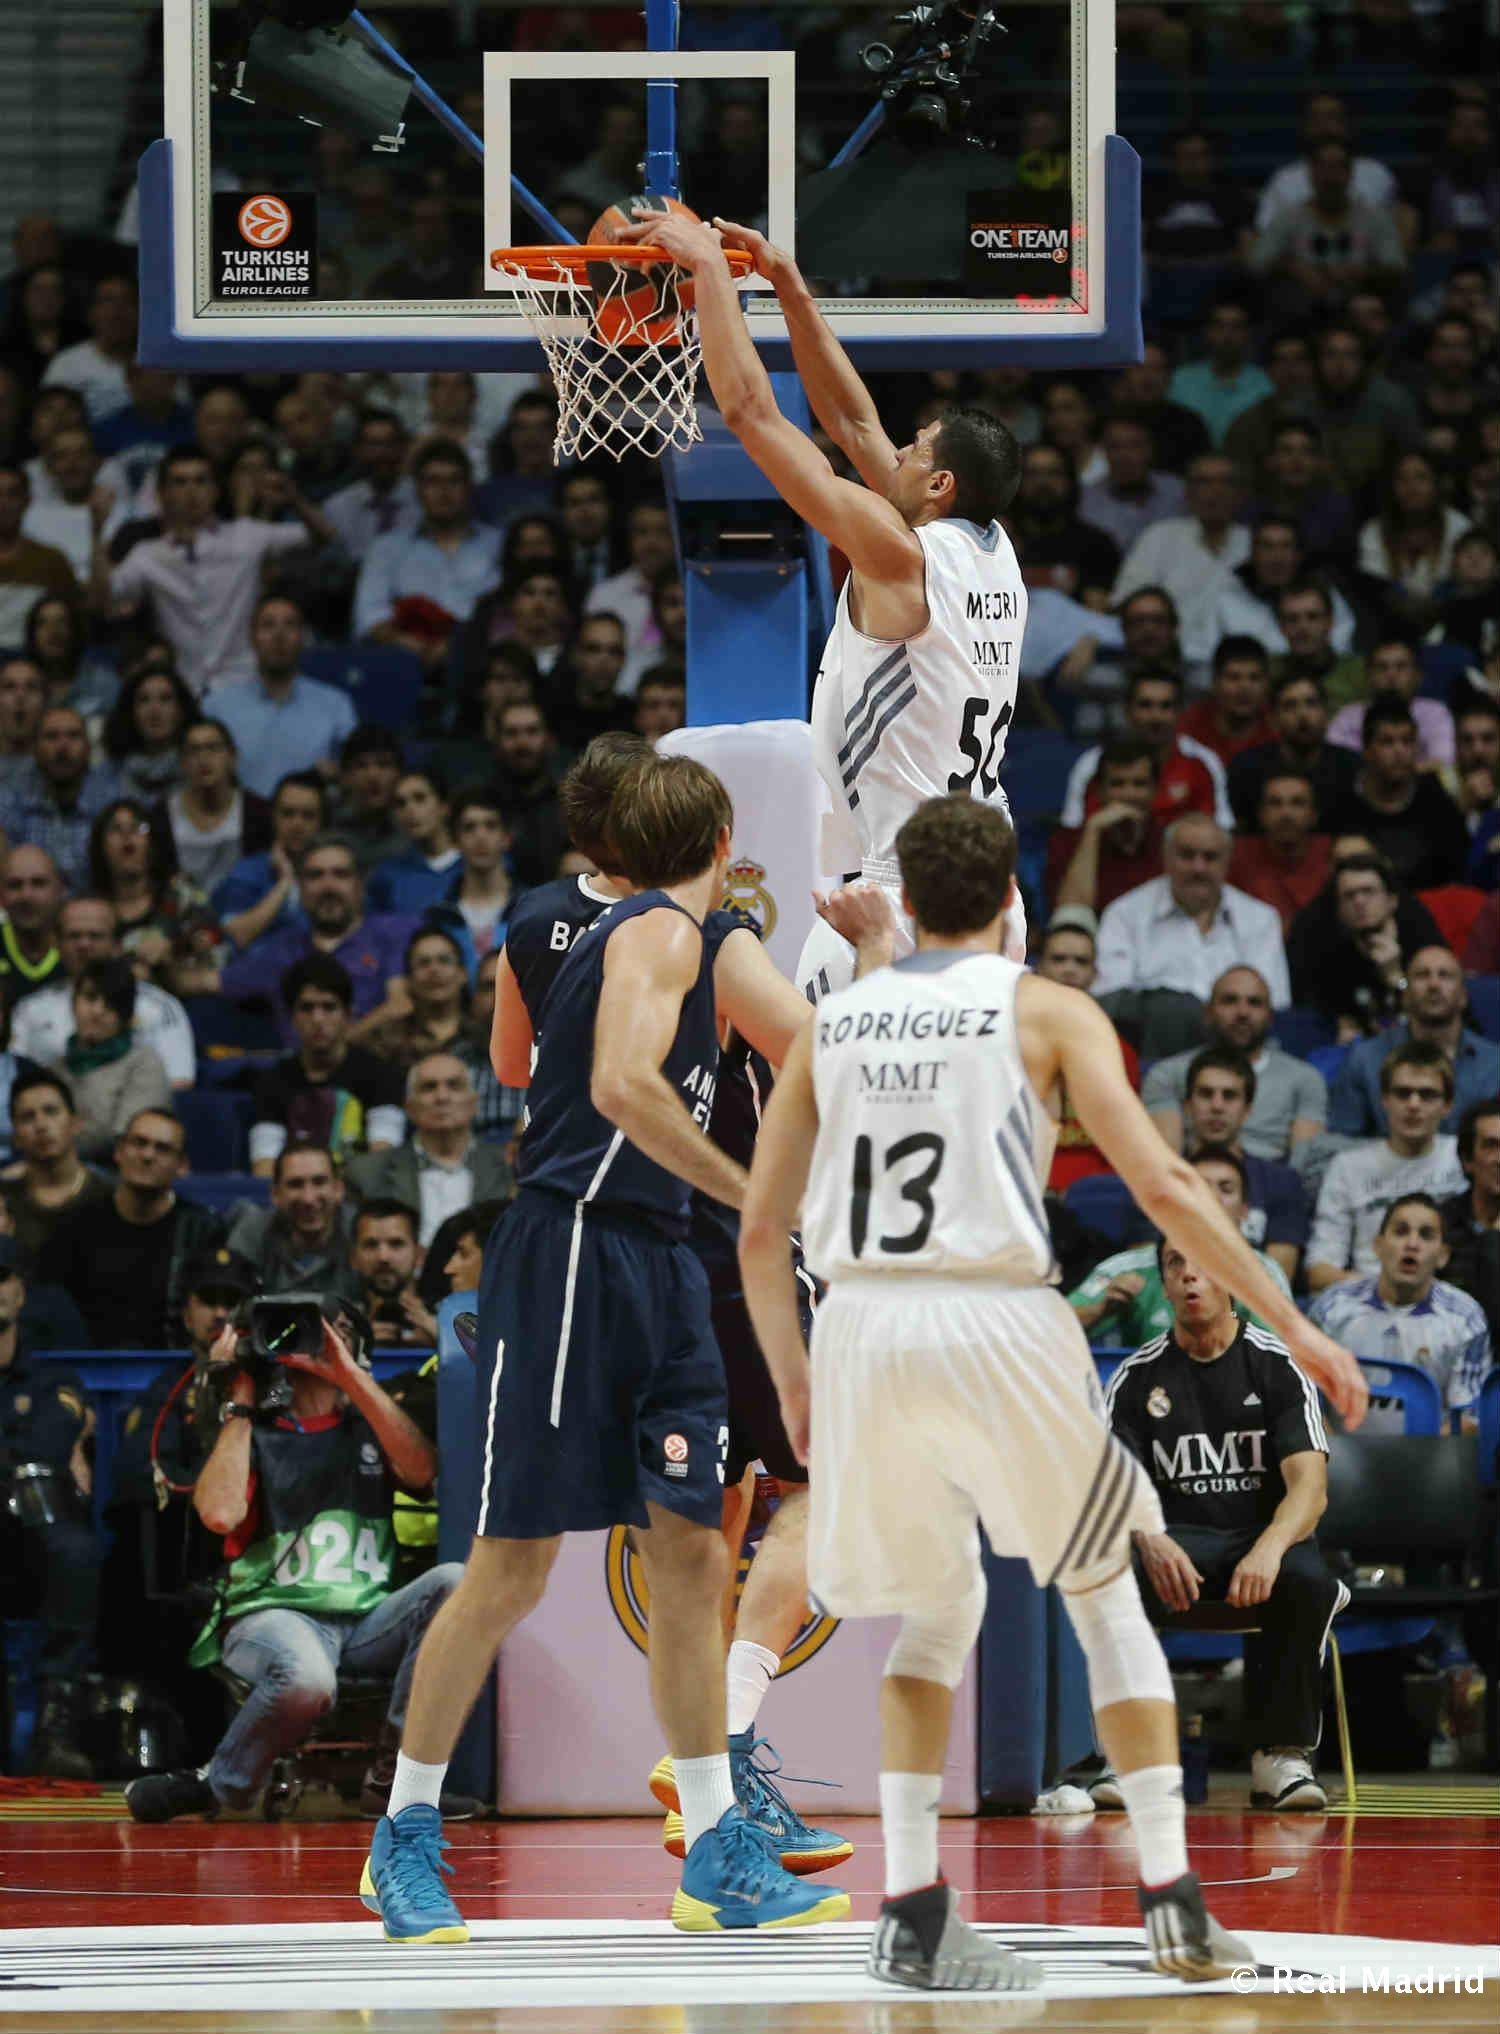 Real Madrid - Mejri - 27-01-2014